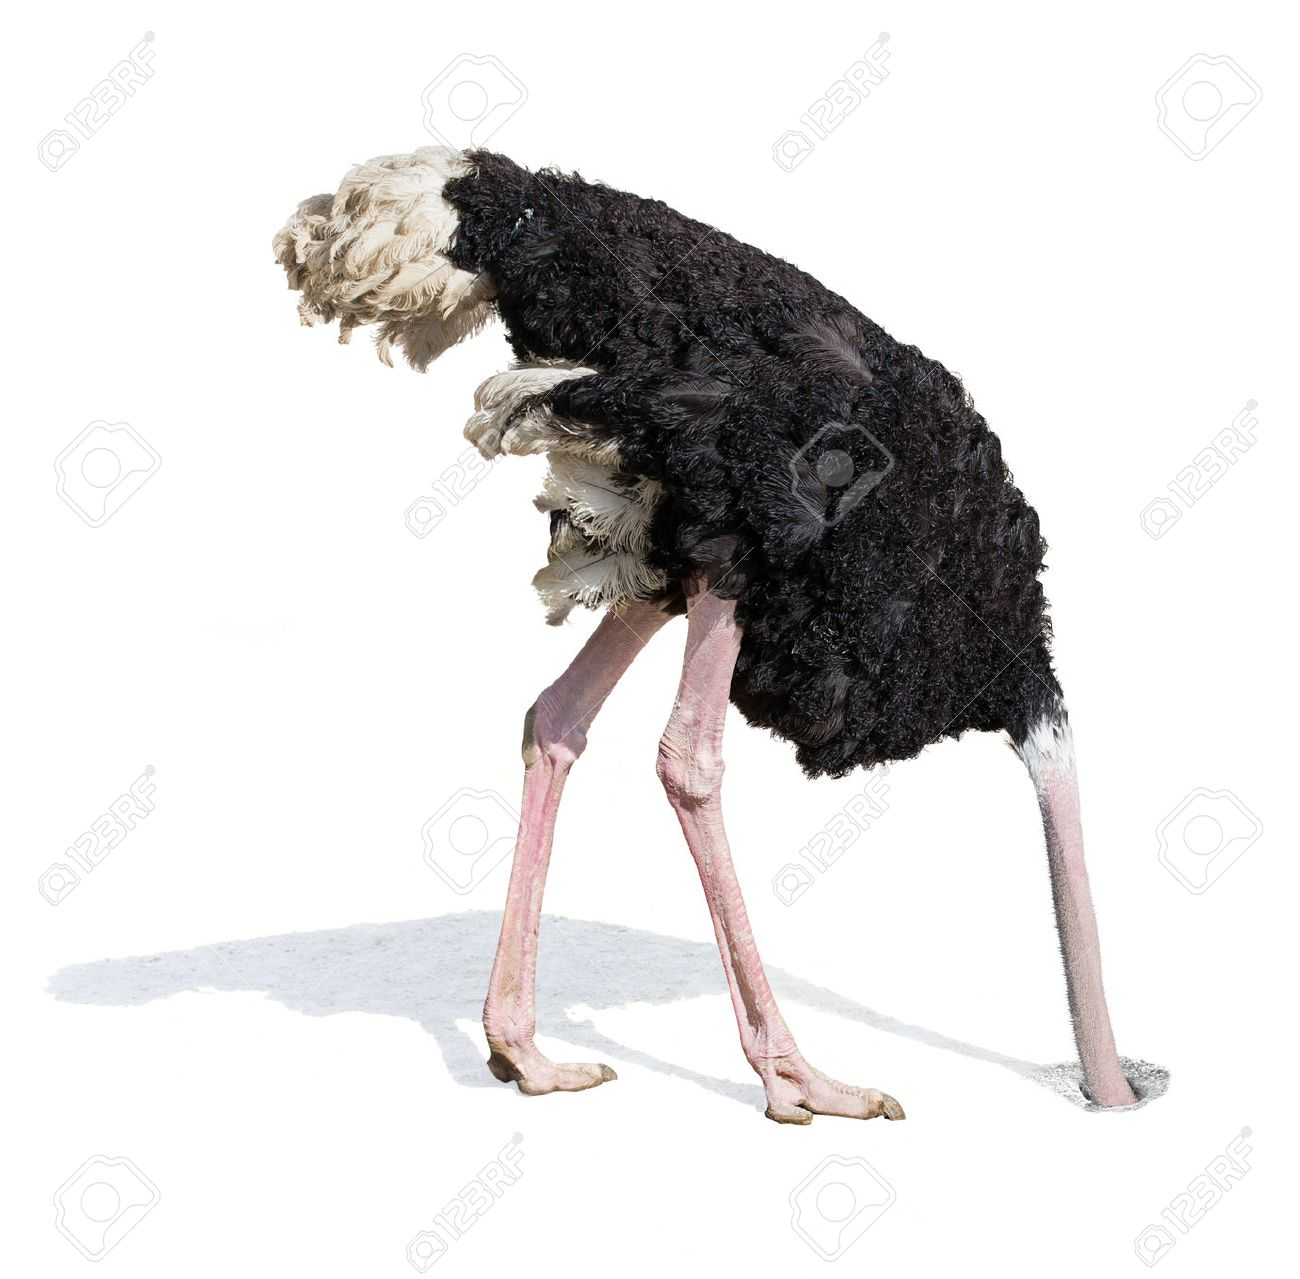 ostrich burying head in sand ignoring problems concept stock